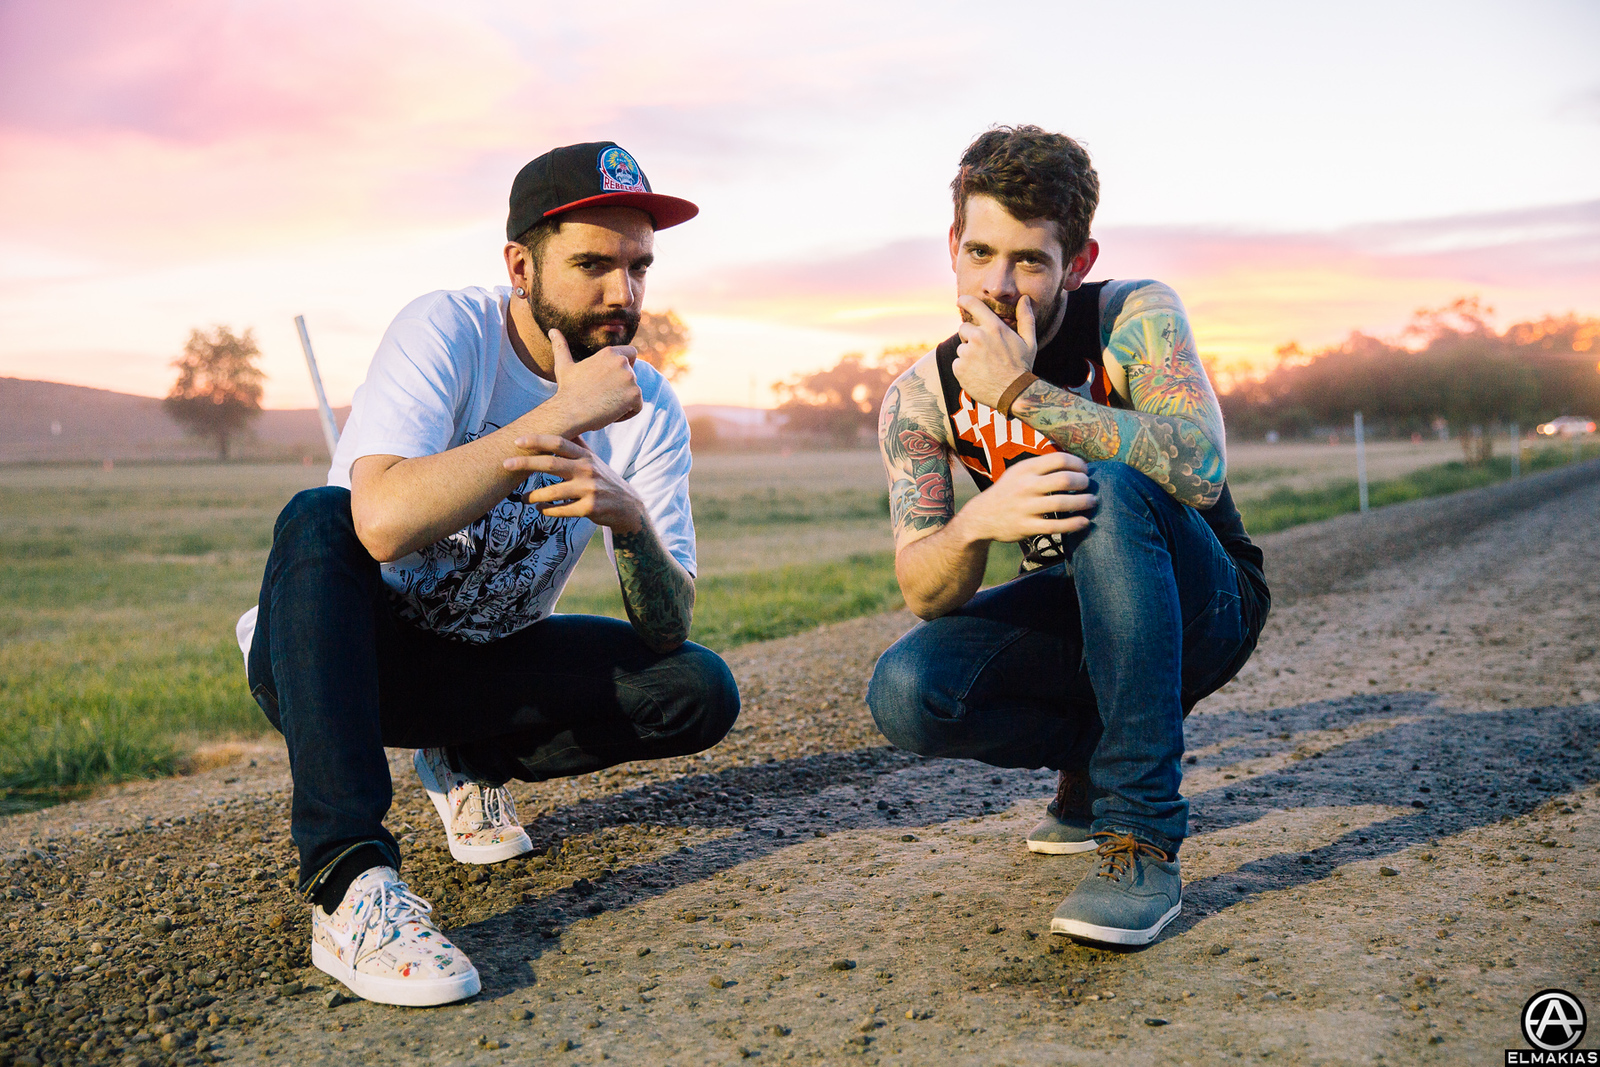 Jeremy McKinnon and Alex Shelnutt of A Day To Remember at Loudwire Festival in Grand Junction, CO